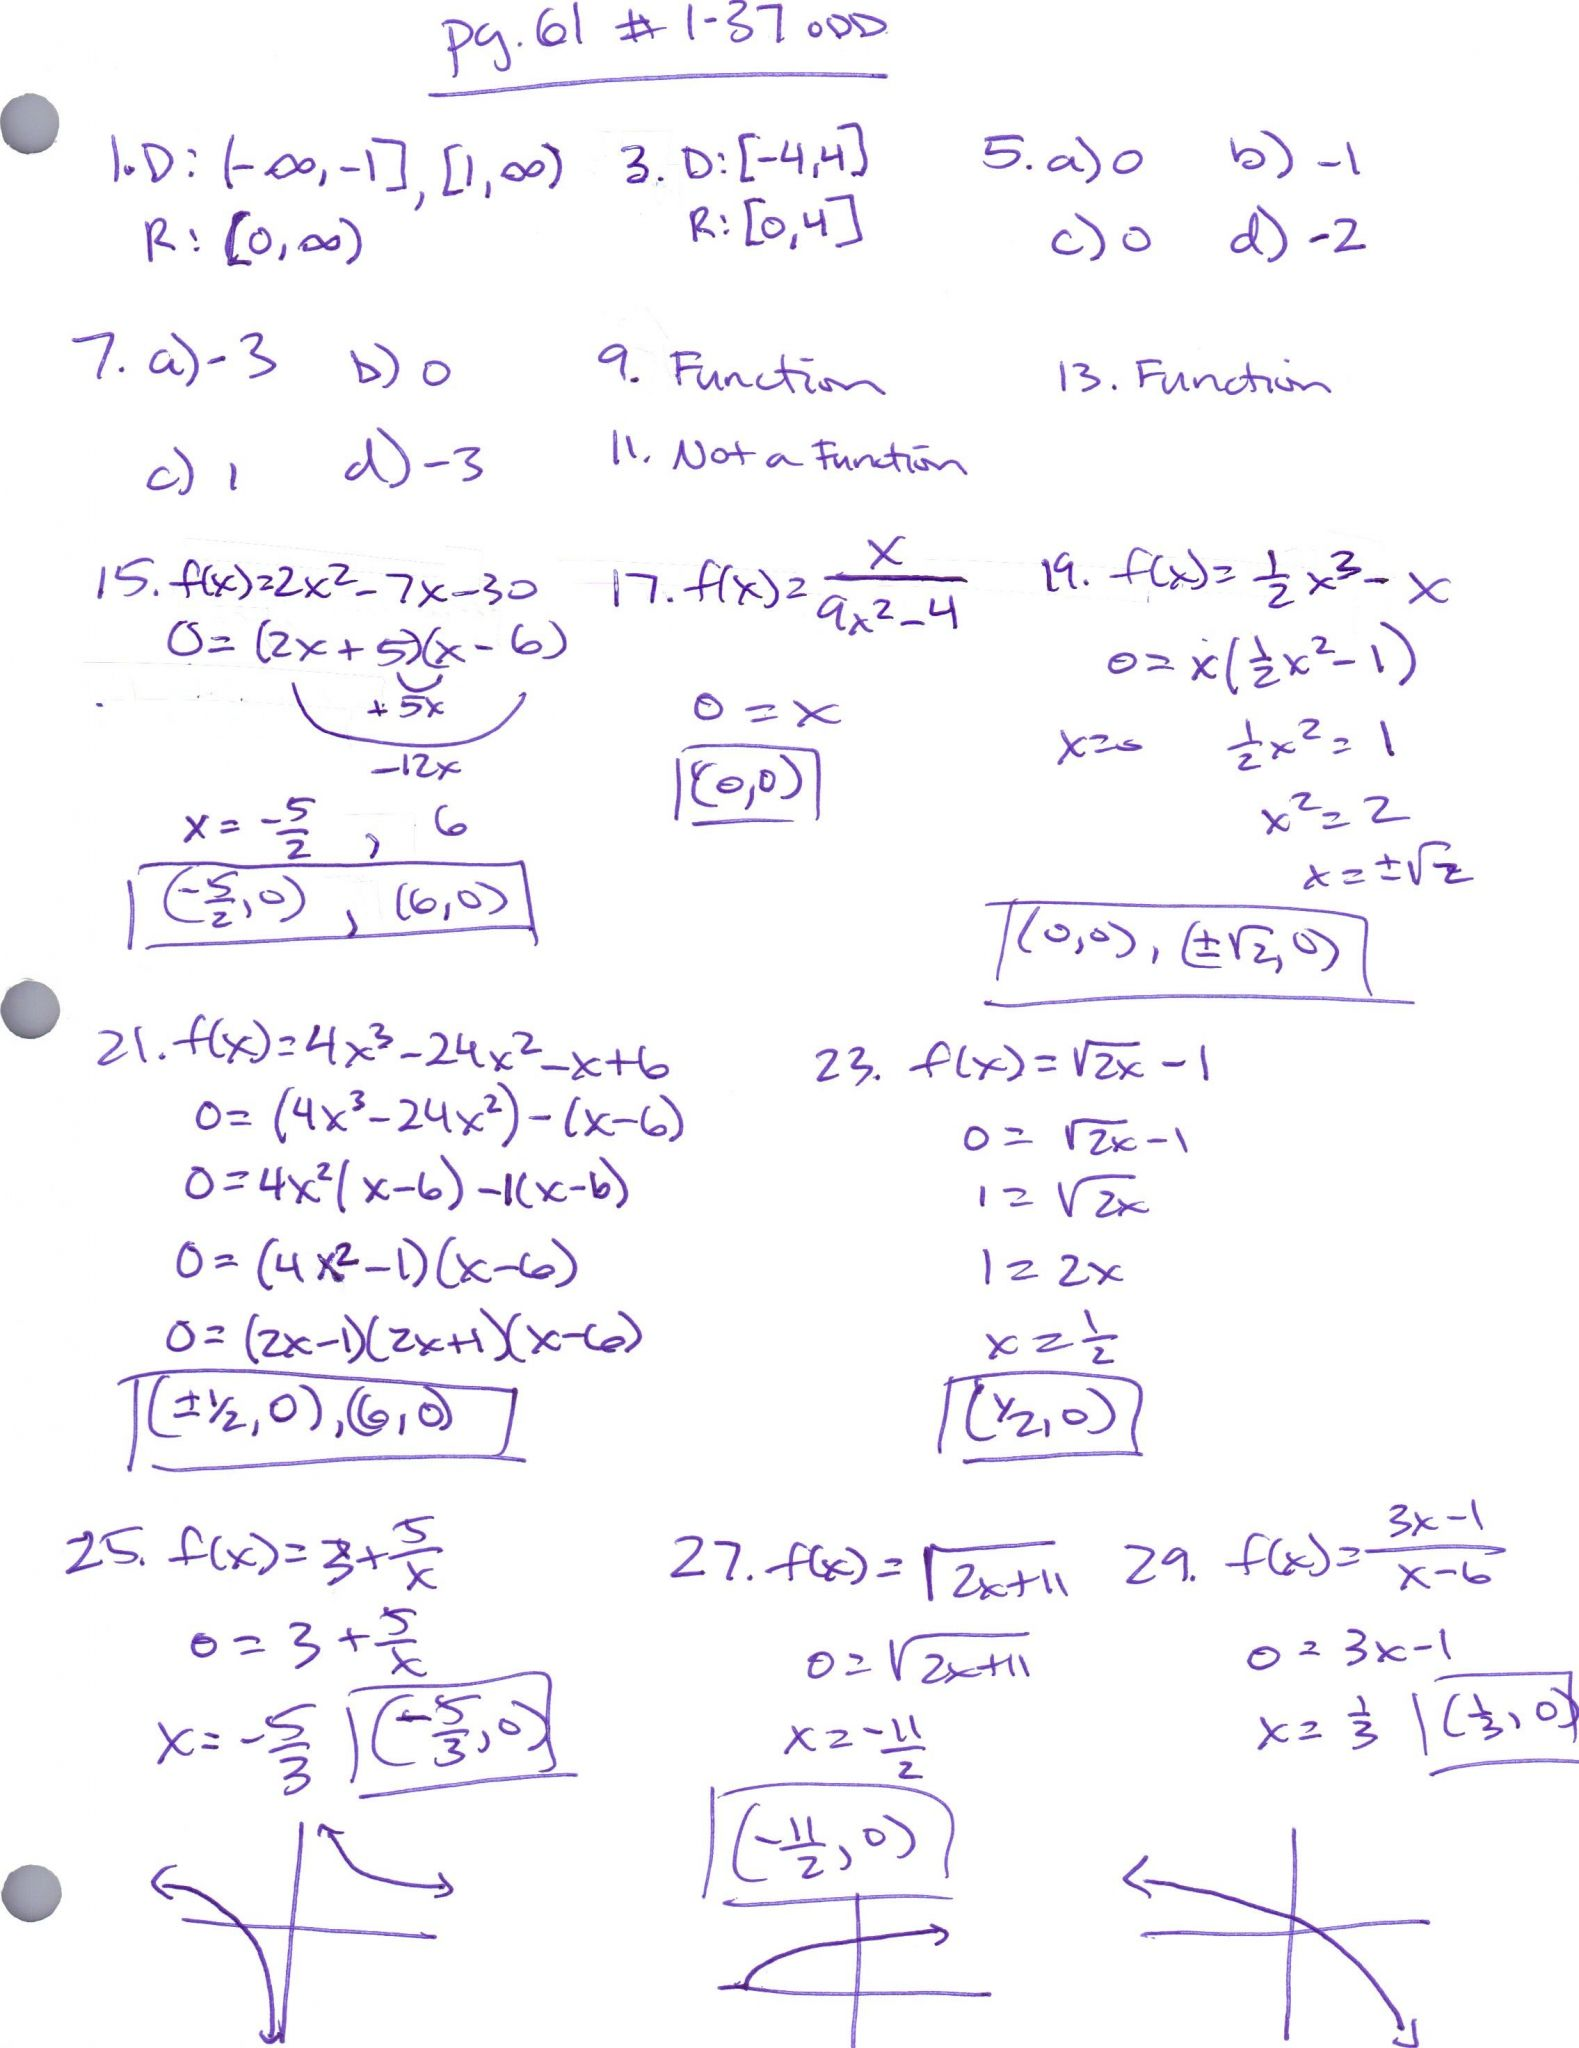 Worksheet On Ratios With Answers